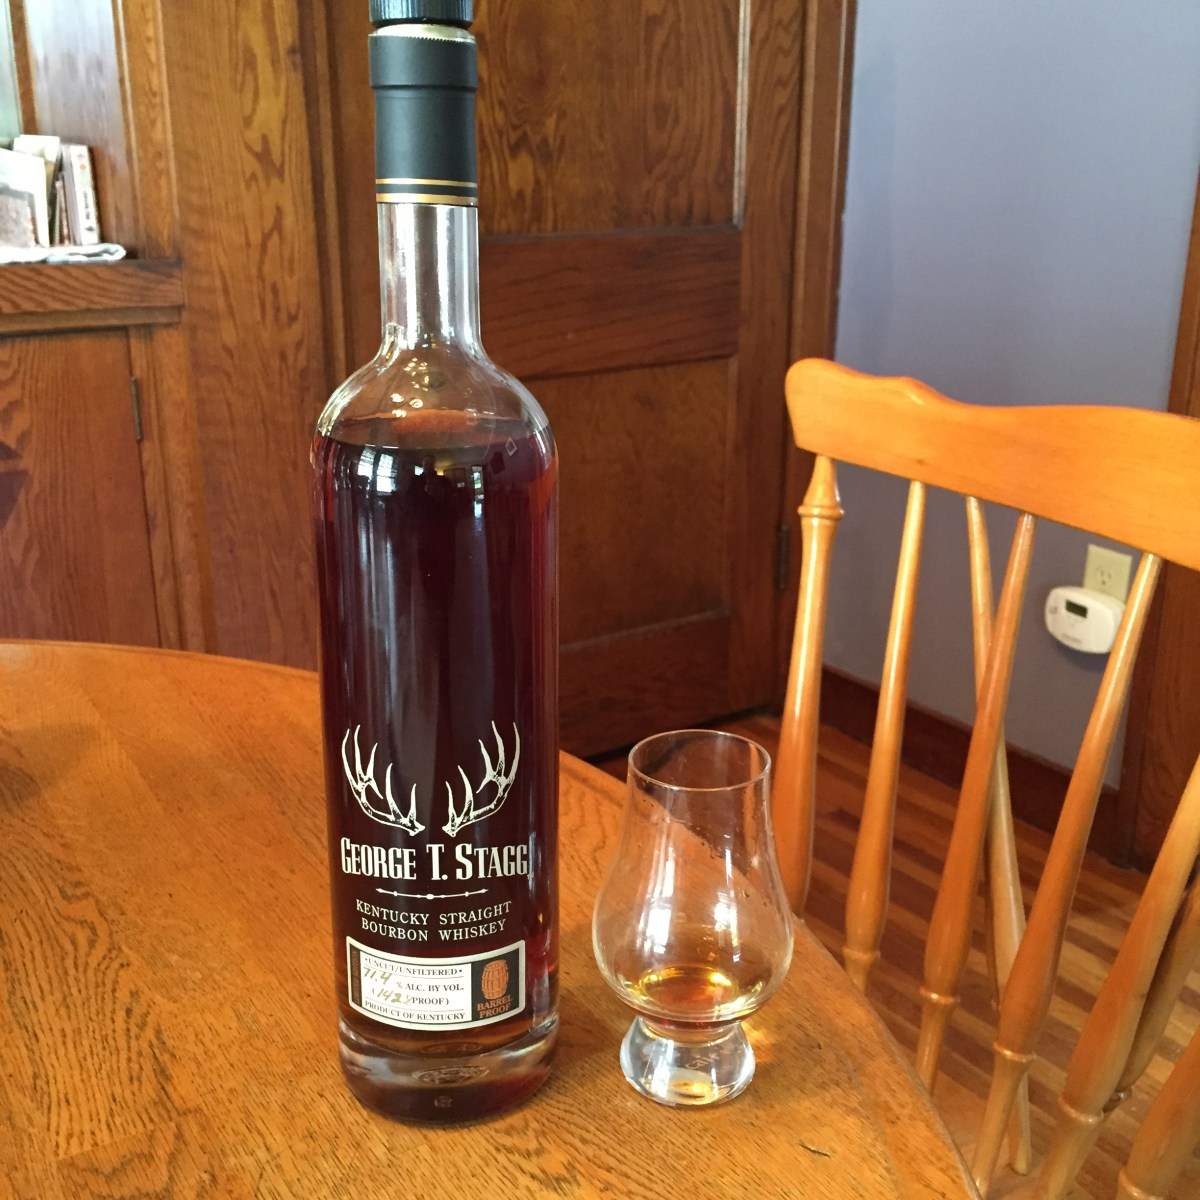 2012 George T. Stagg Review